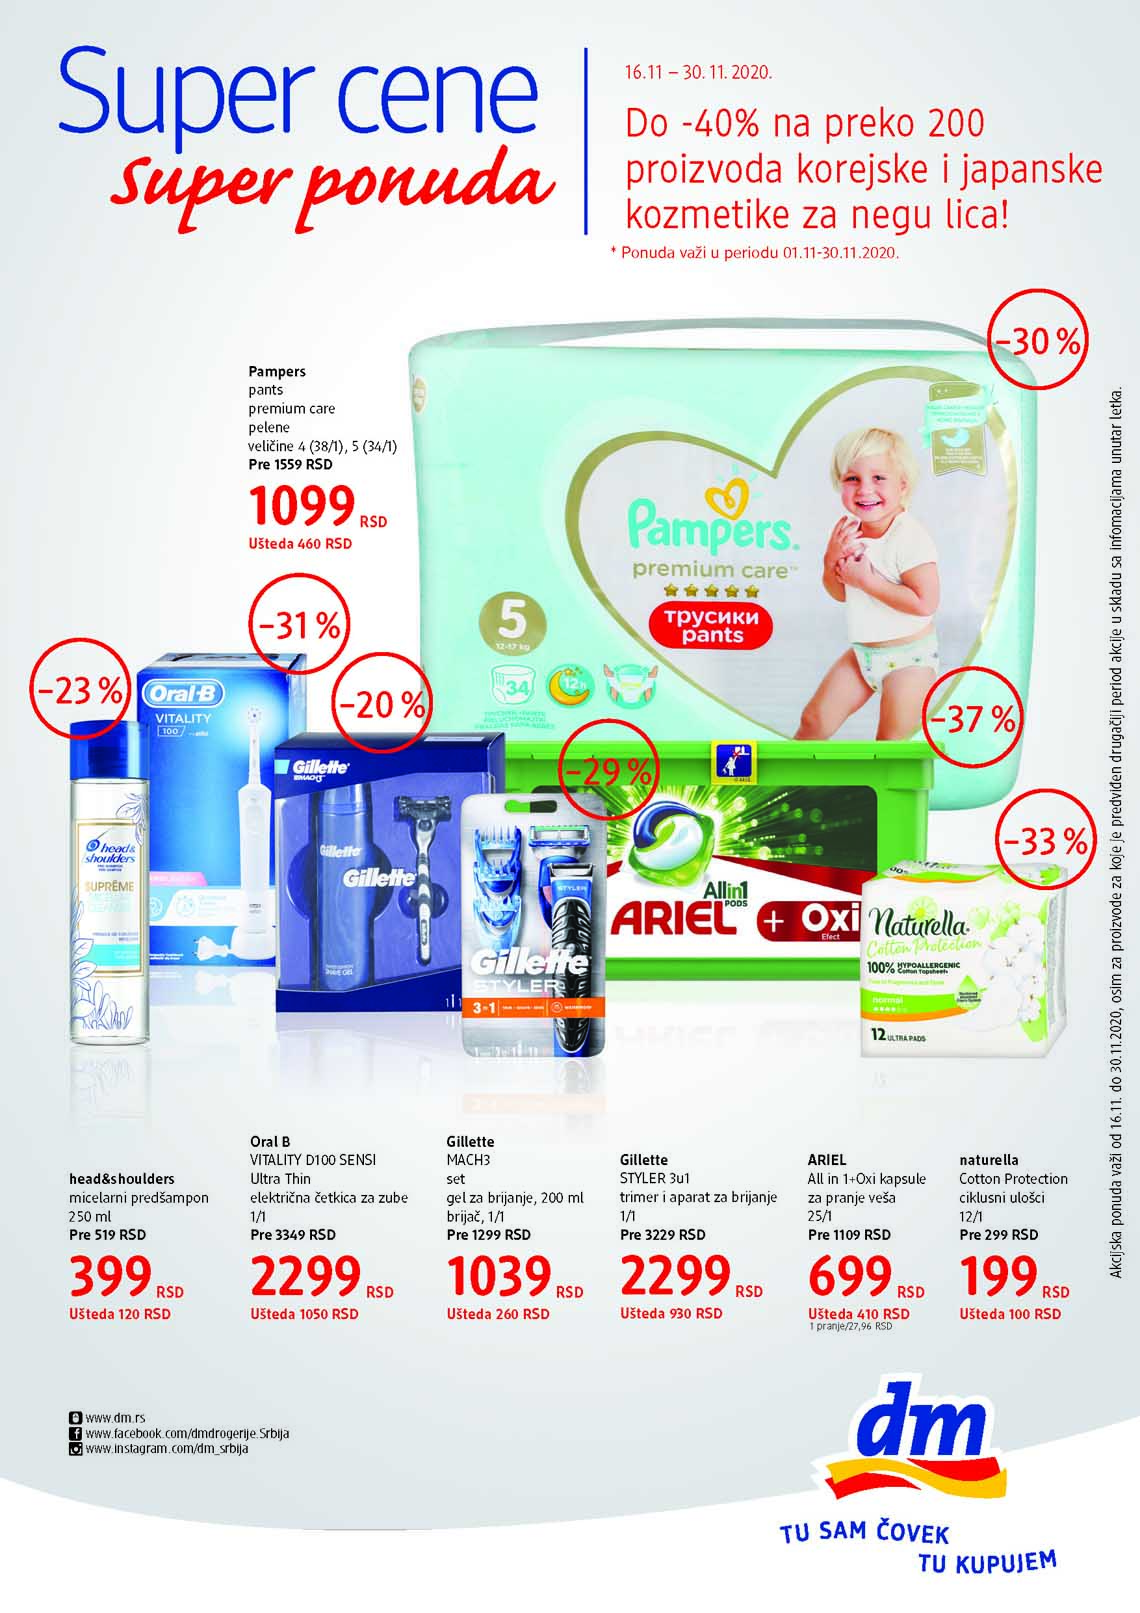 dm EXPRESS Katalog - Akcija do 30.11.2020.